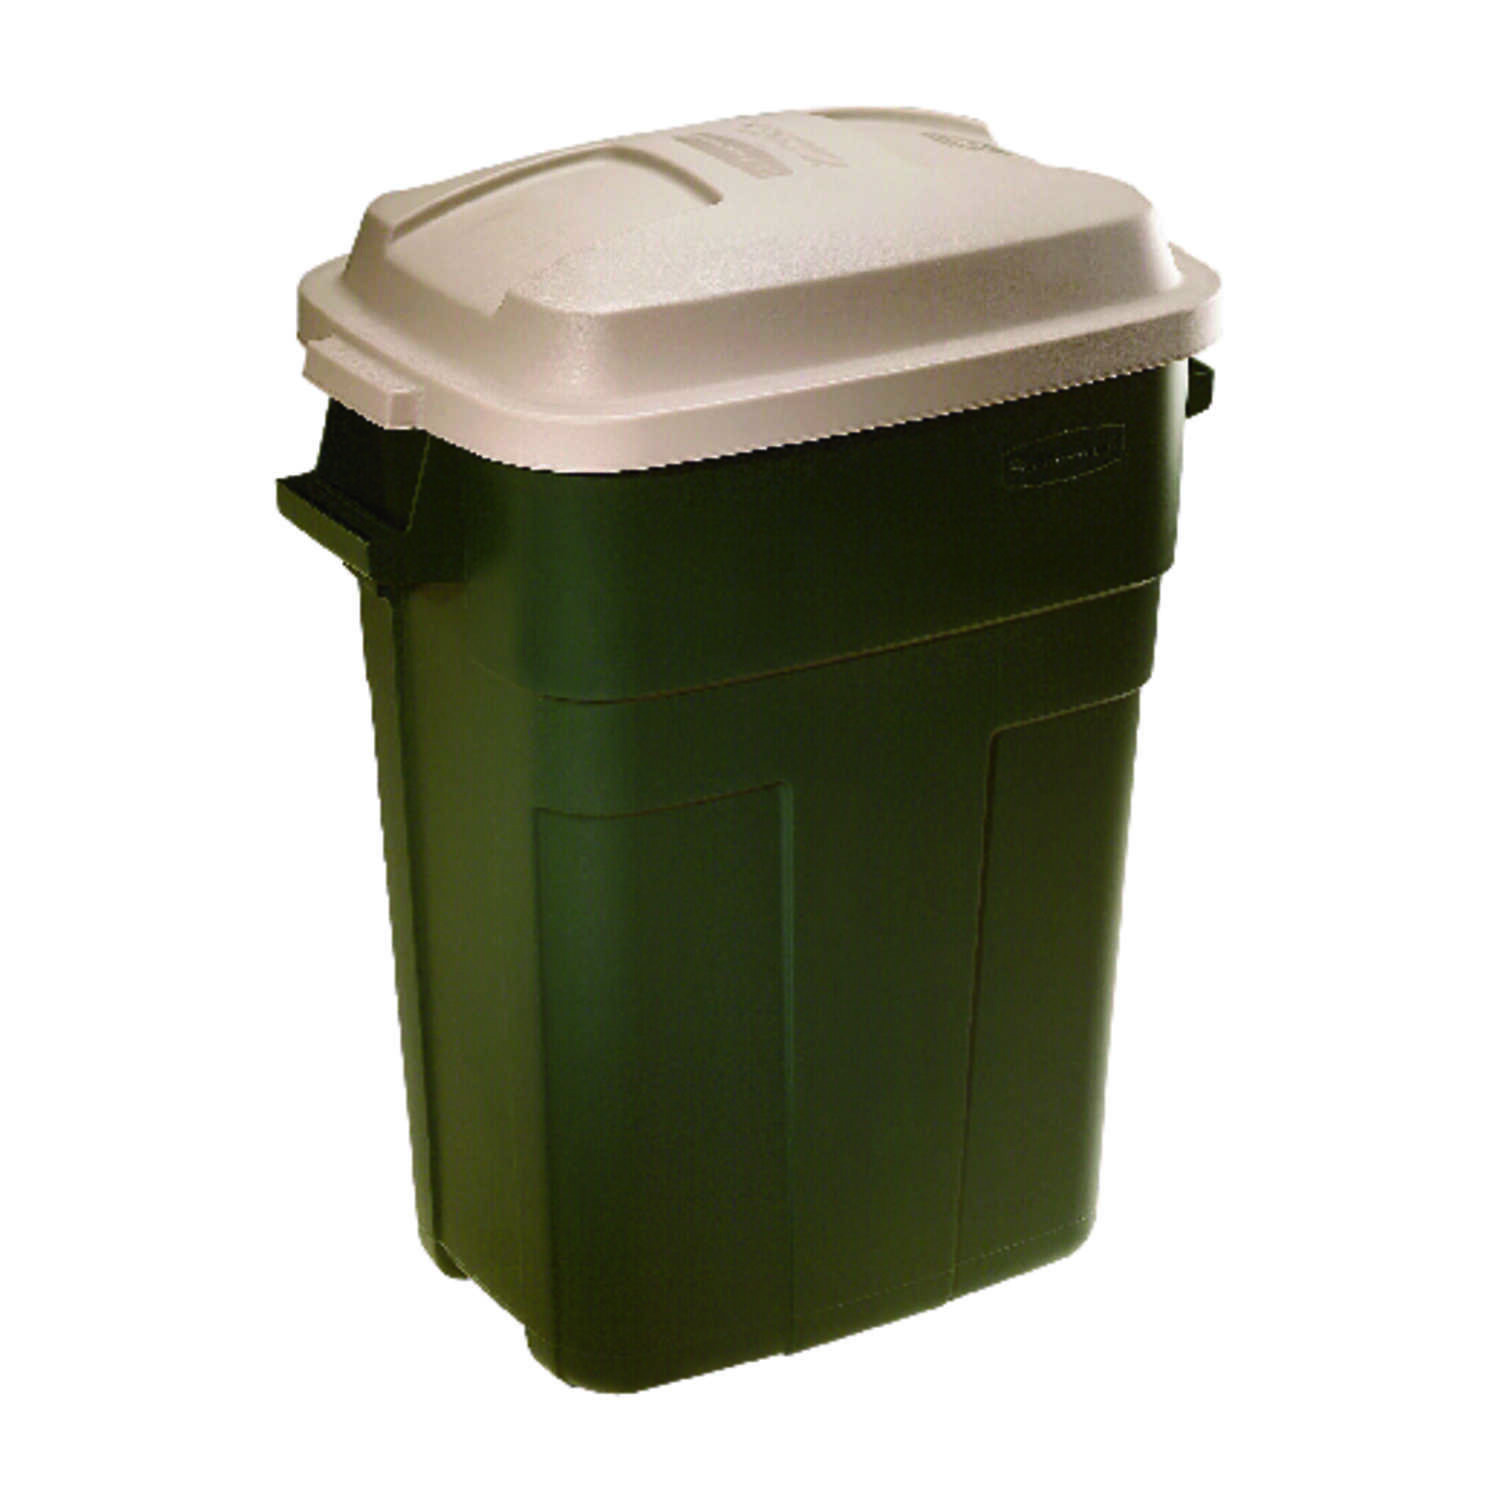 Rubbermaid  Roughneck  30 gal. Plastic  Garbage Can